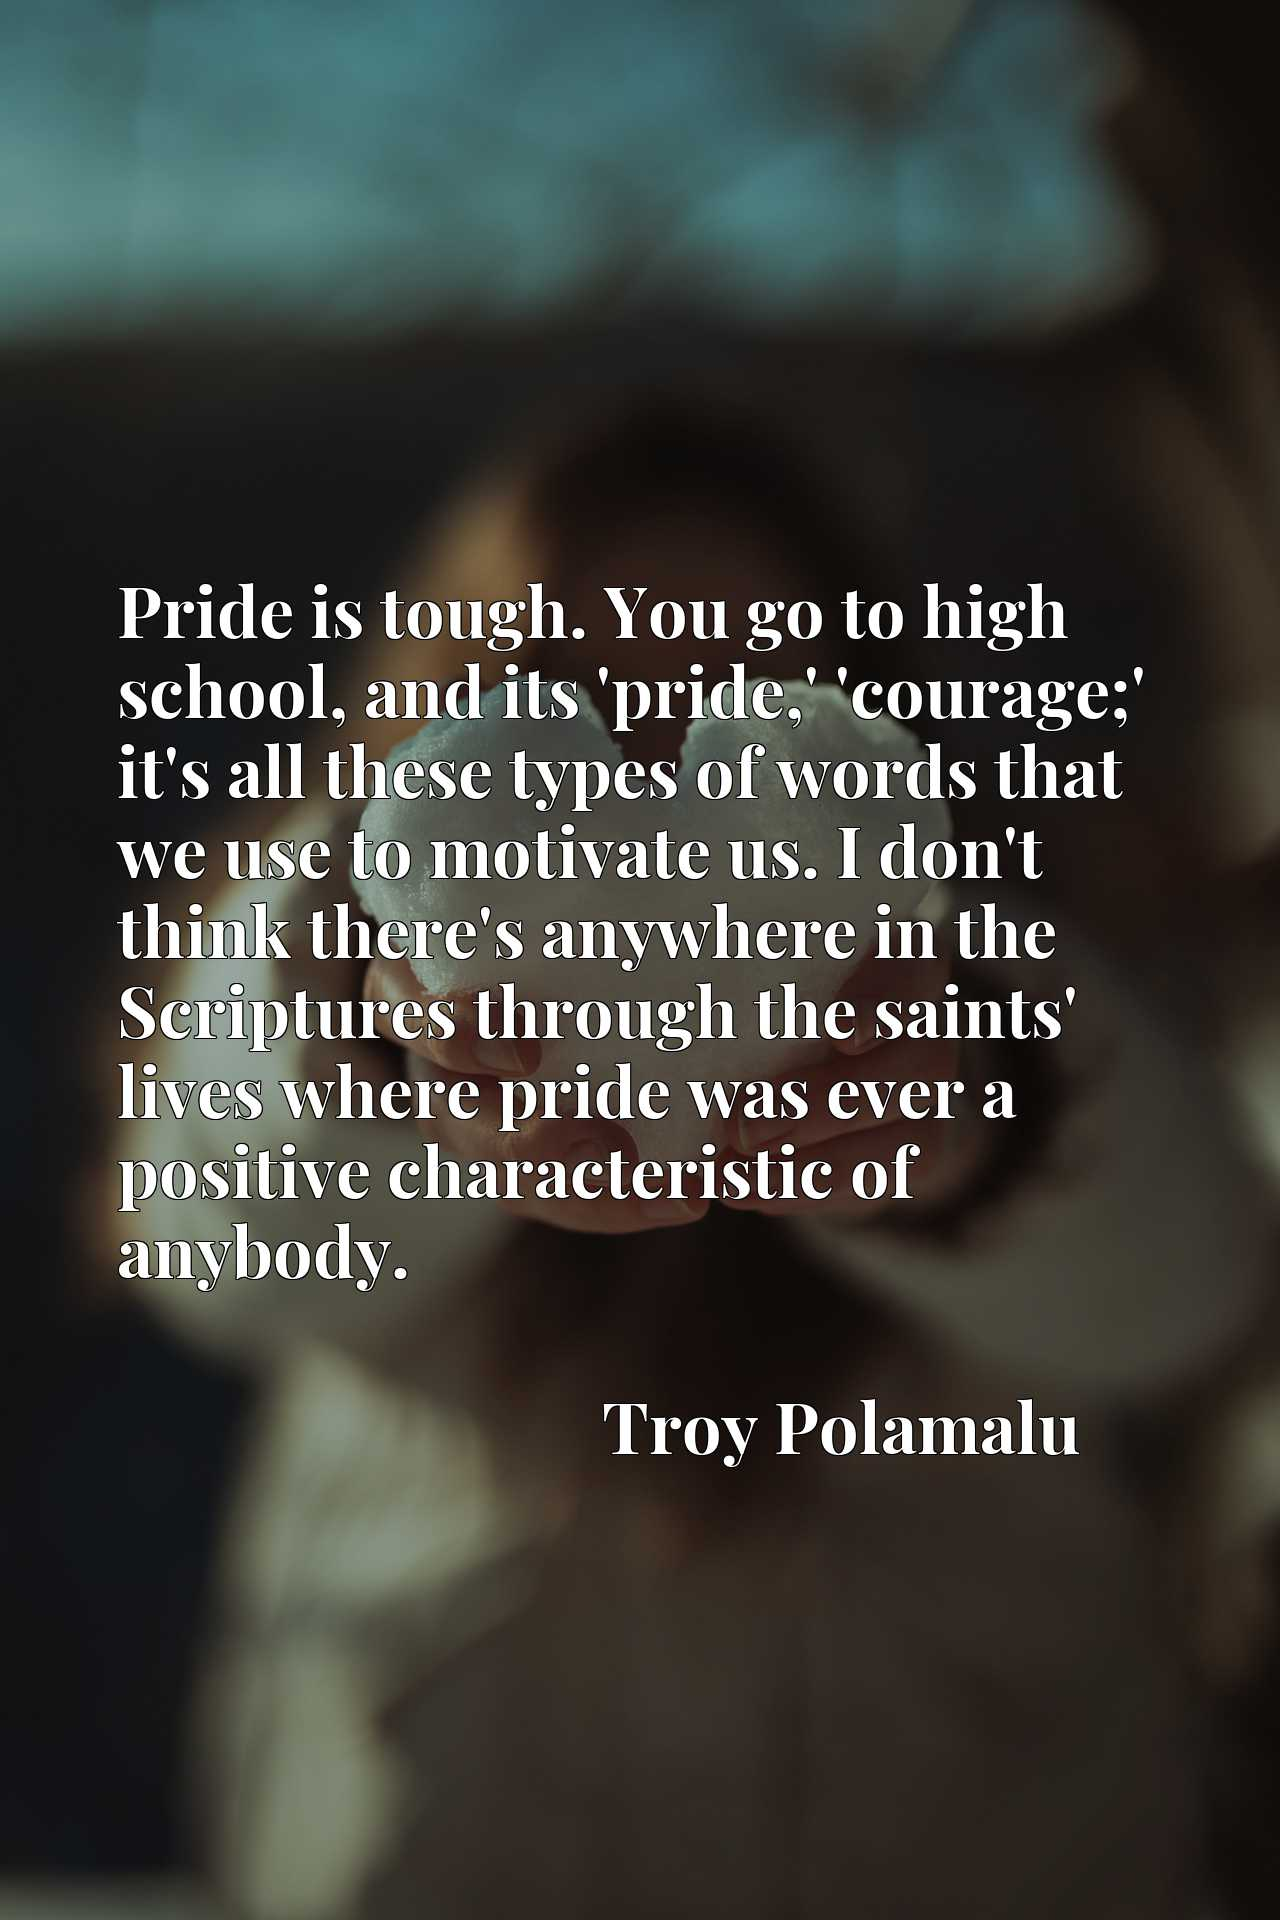 Pride is tough. You go to high school, and its 'pride,' 'courage;' it's all these types of words that we use to motivate us. I don't think there's anywhere in the Scriptures through the saints' lives where pride was ever a positive characteristic of anybody.